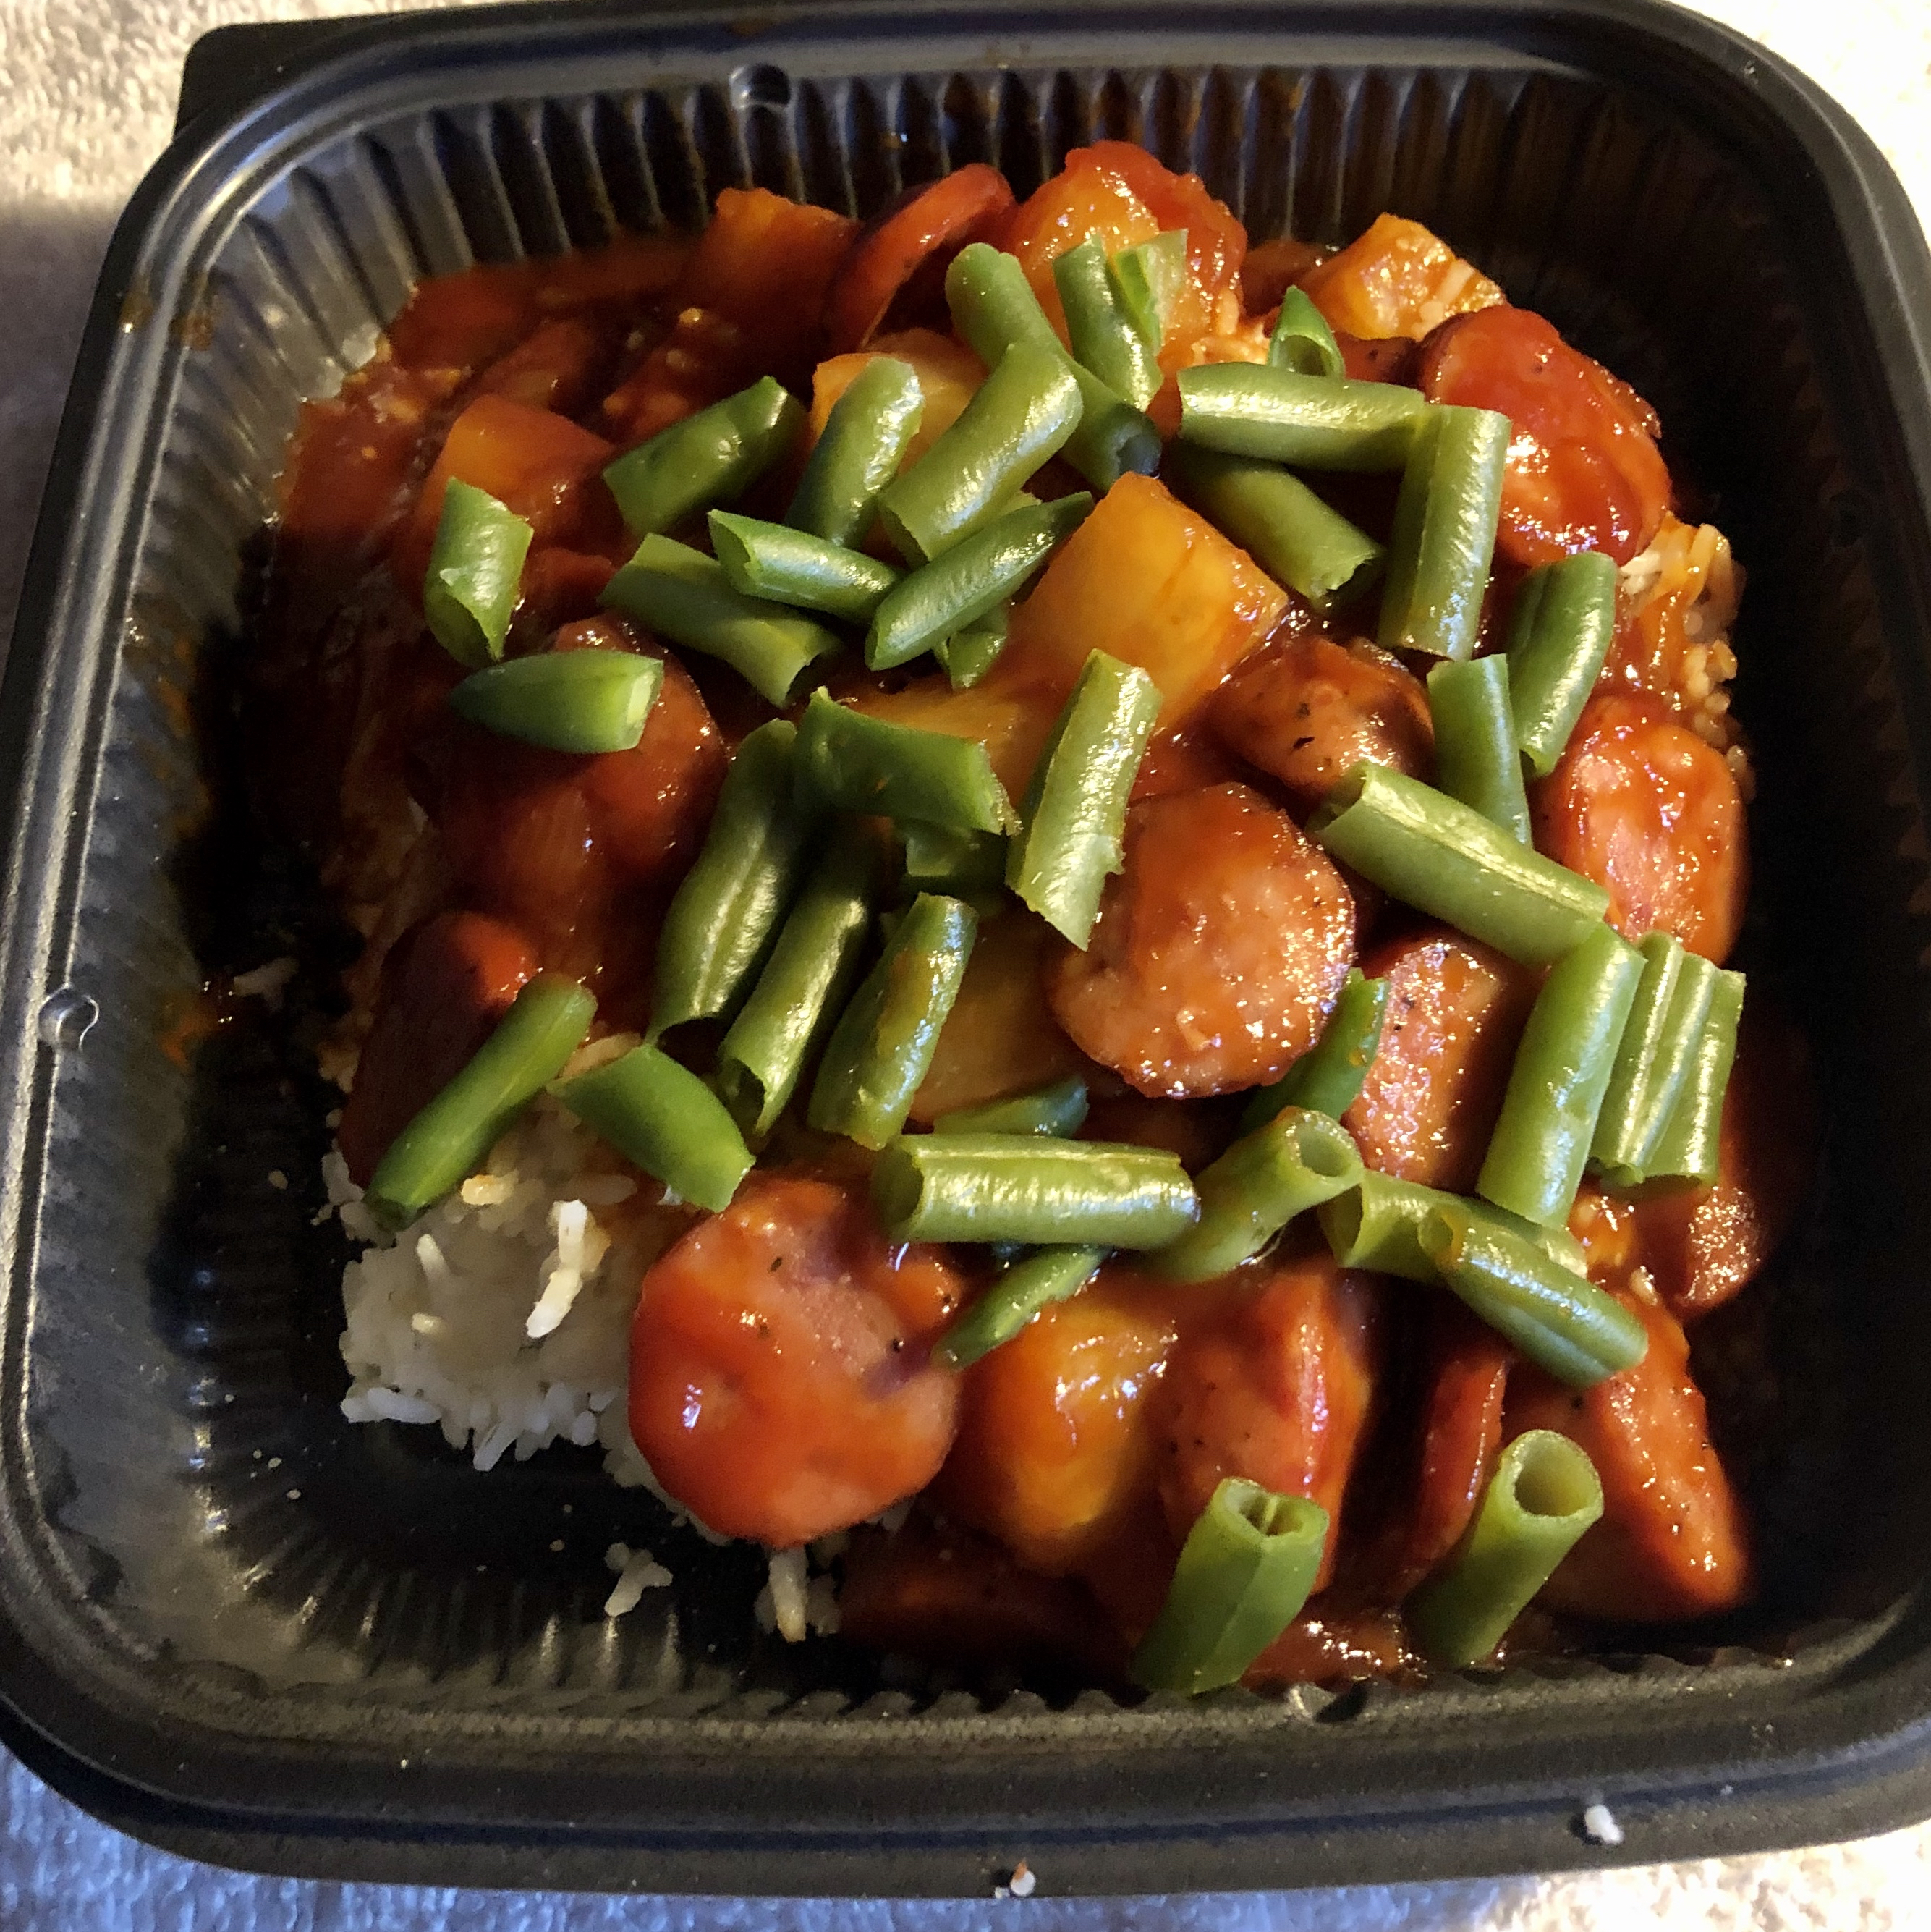 Island Kielbasa in a Slow Cooker